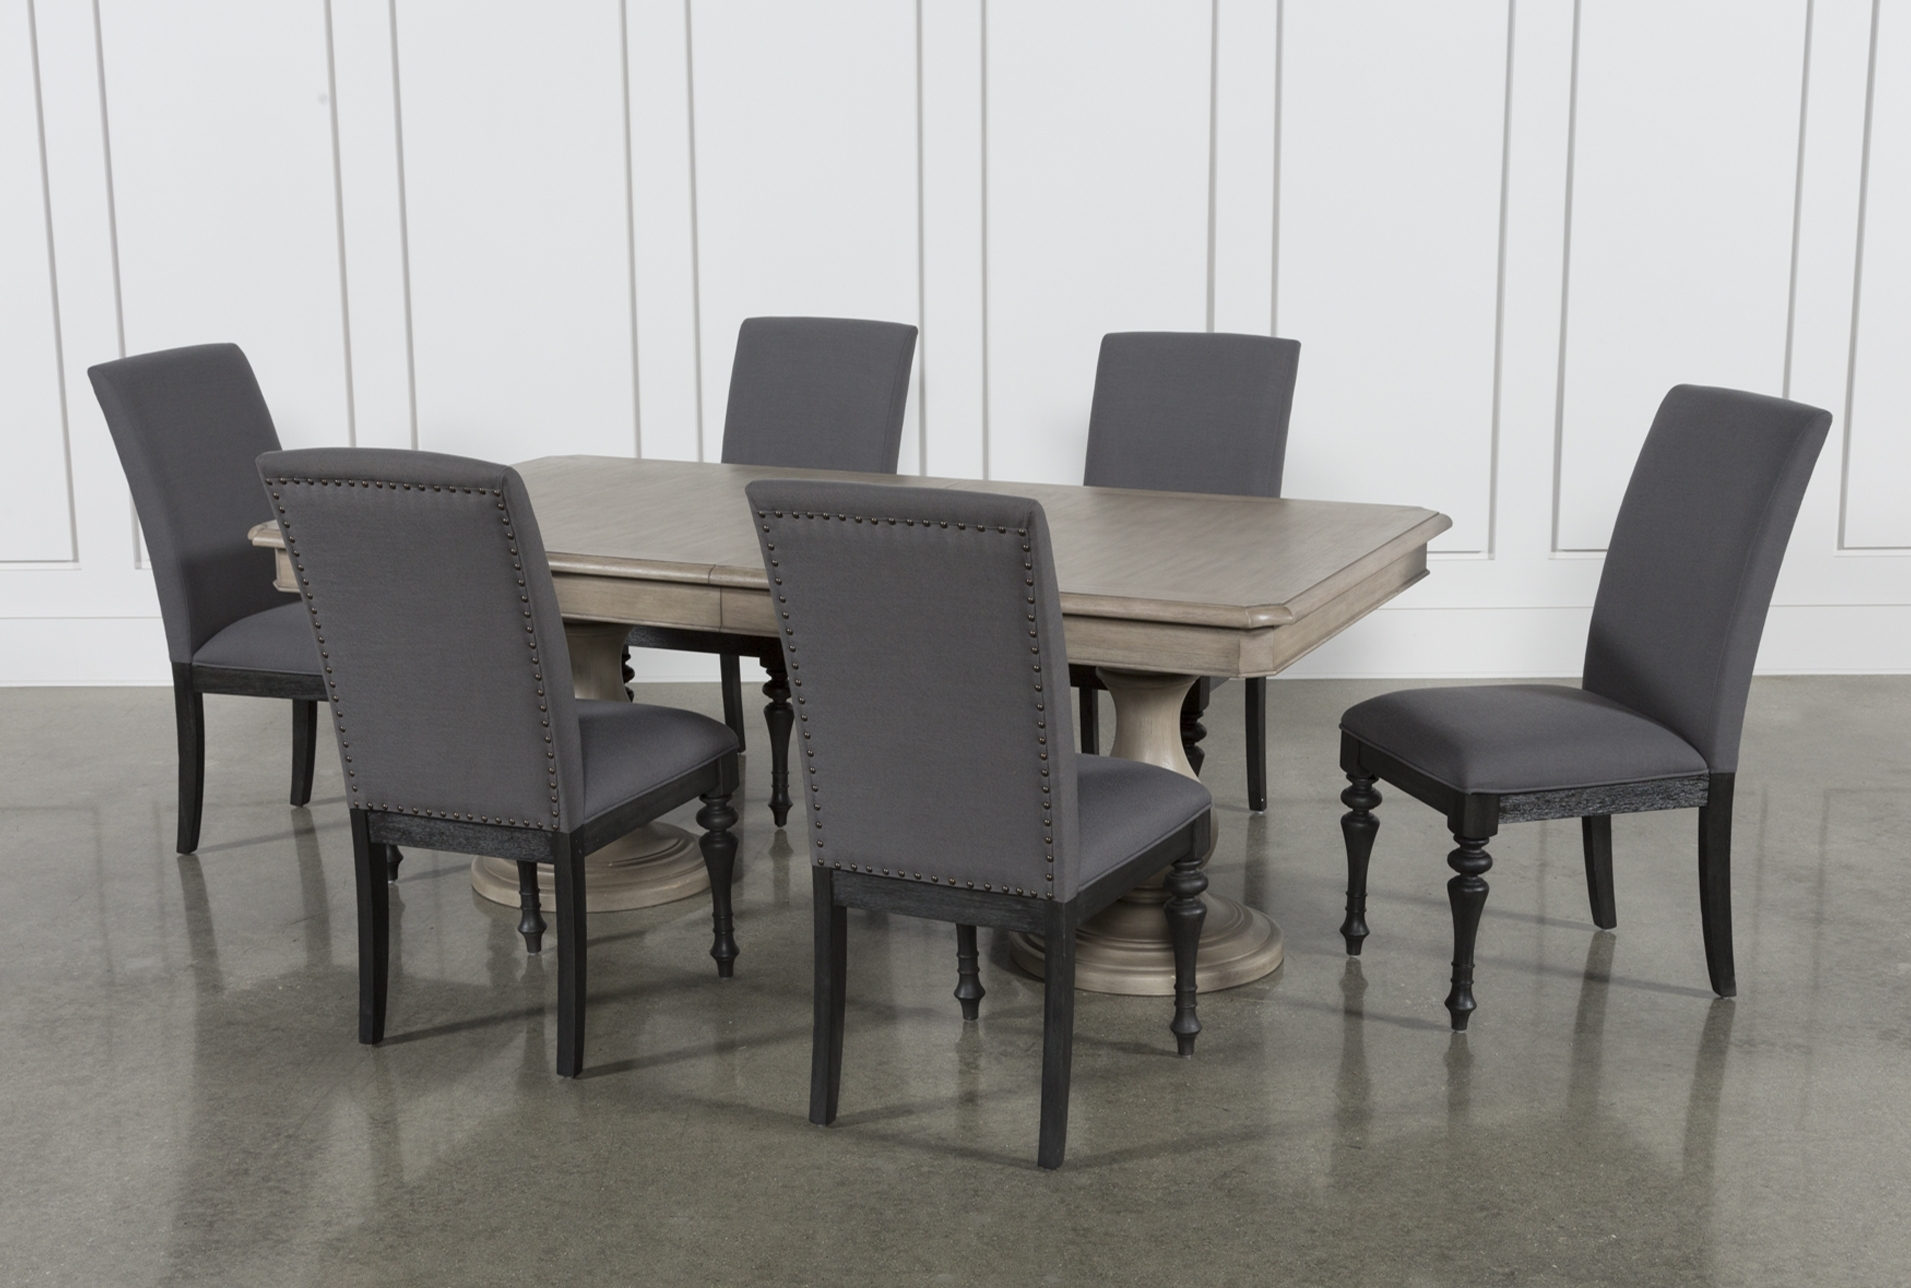 Have To Have It. Harmonia Living Urbana Patio Dining Set - throughout Preferred Chapleau Ii 7 Piece Extension Dining Table Sets